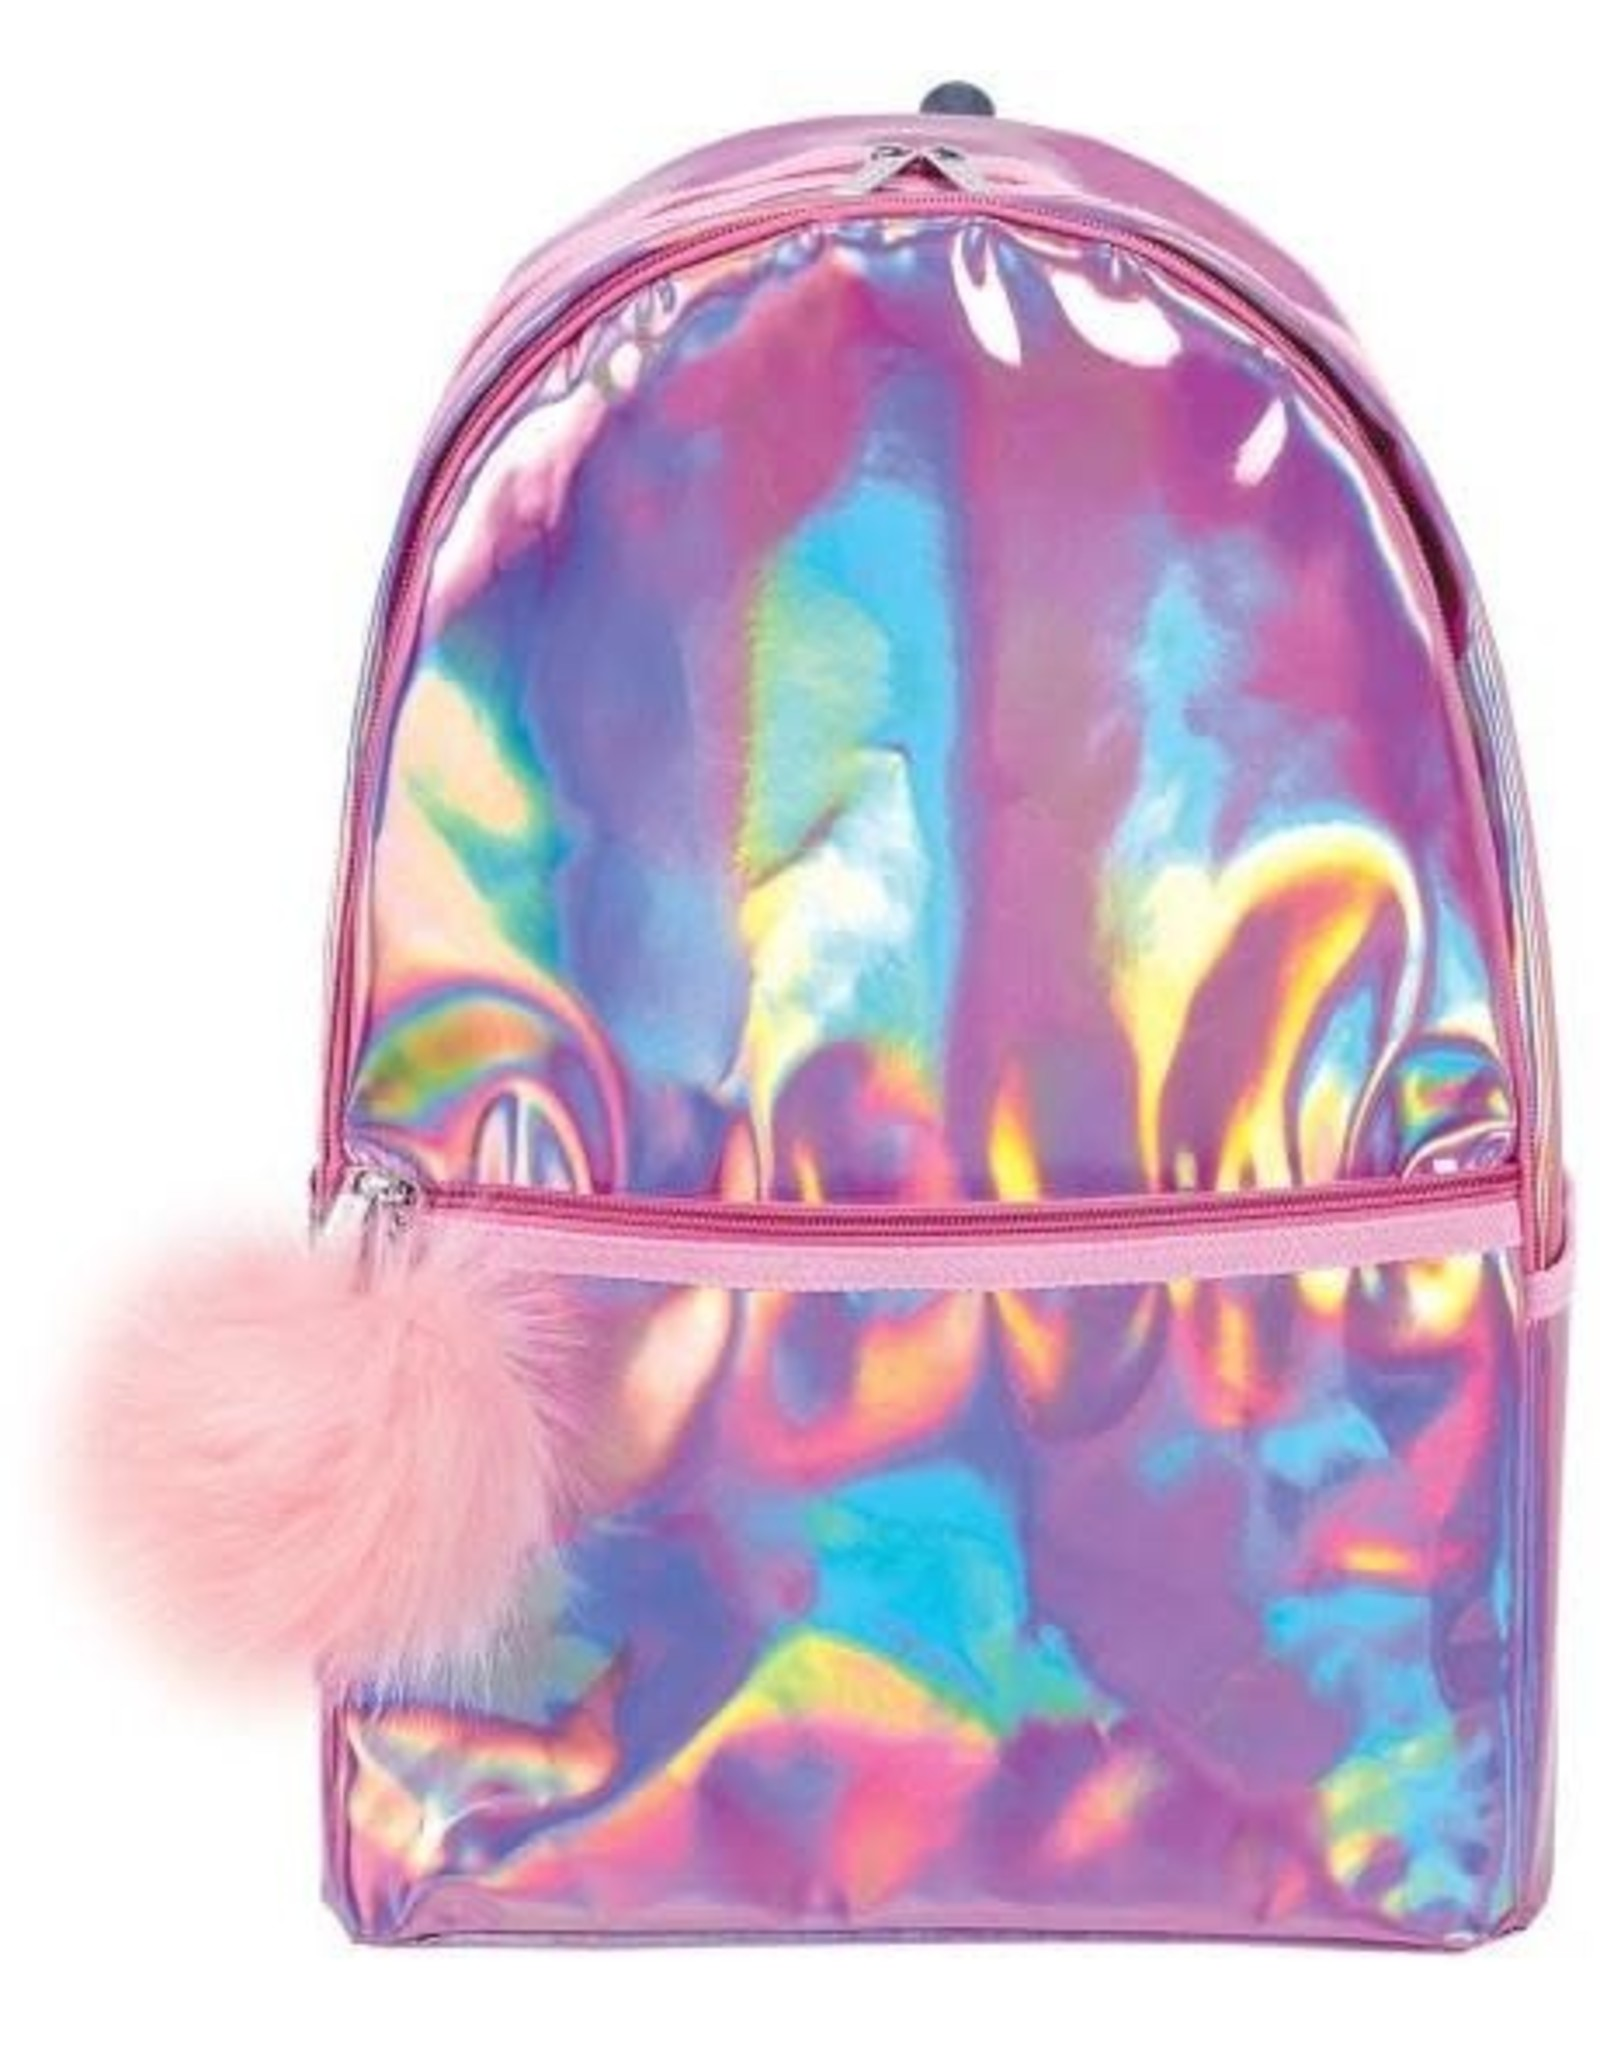 Pink Holographic Backpack - Clearance